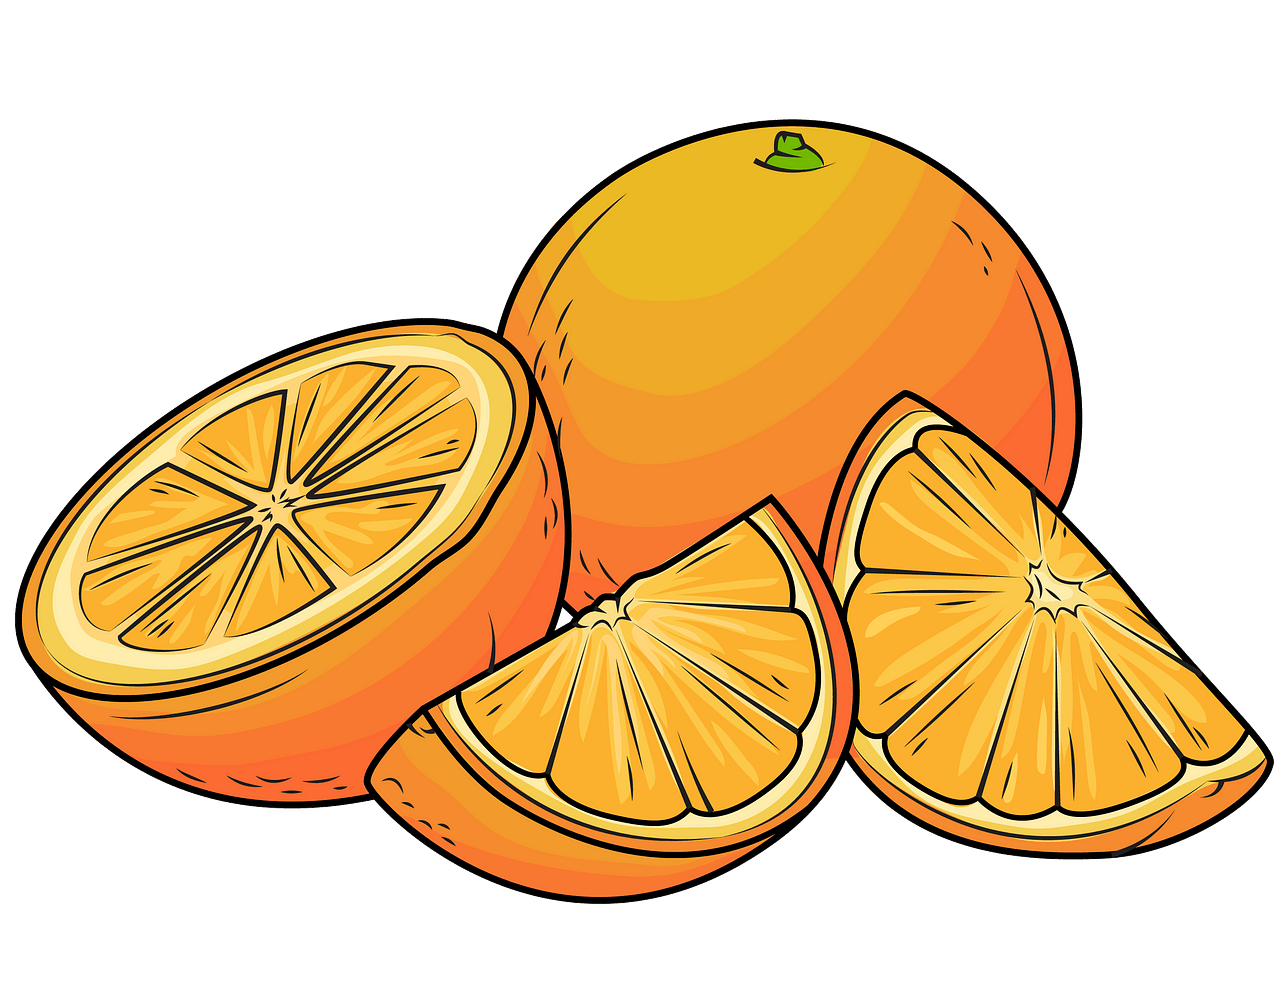 Oranges clipart. Free download..